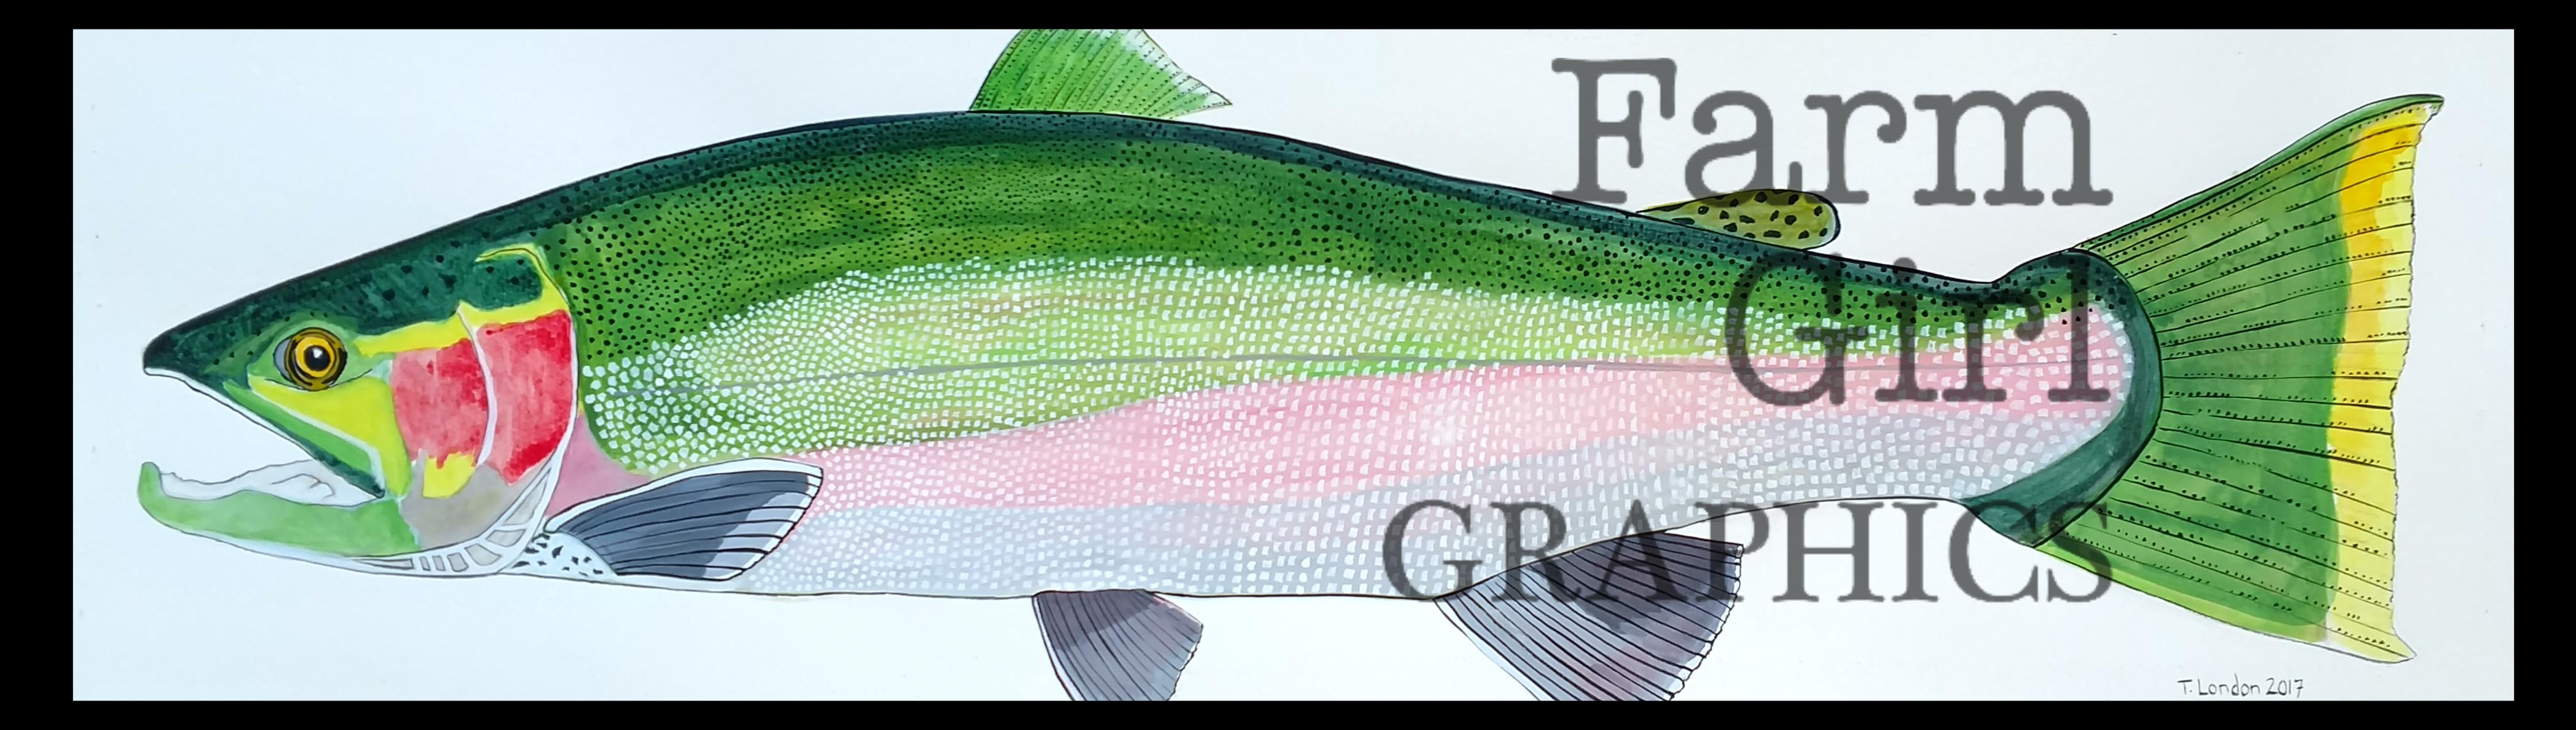 Steelhead.watermark